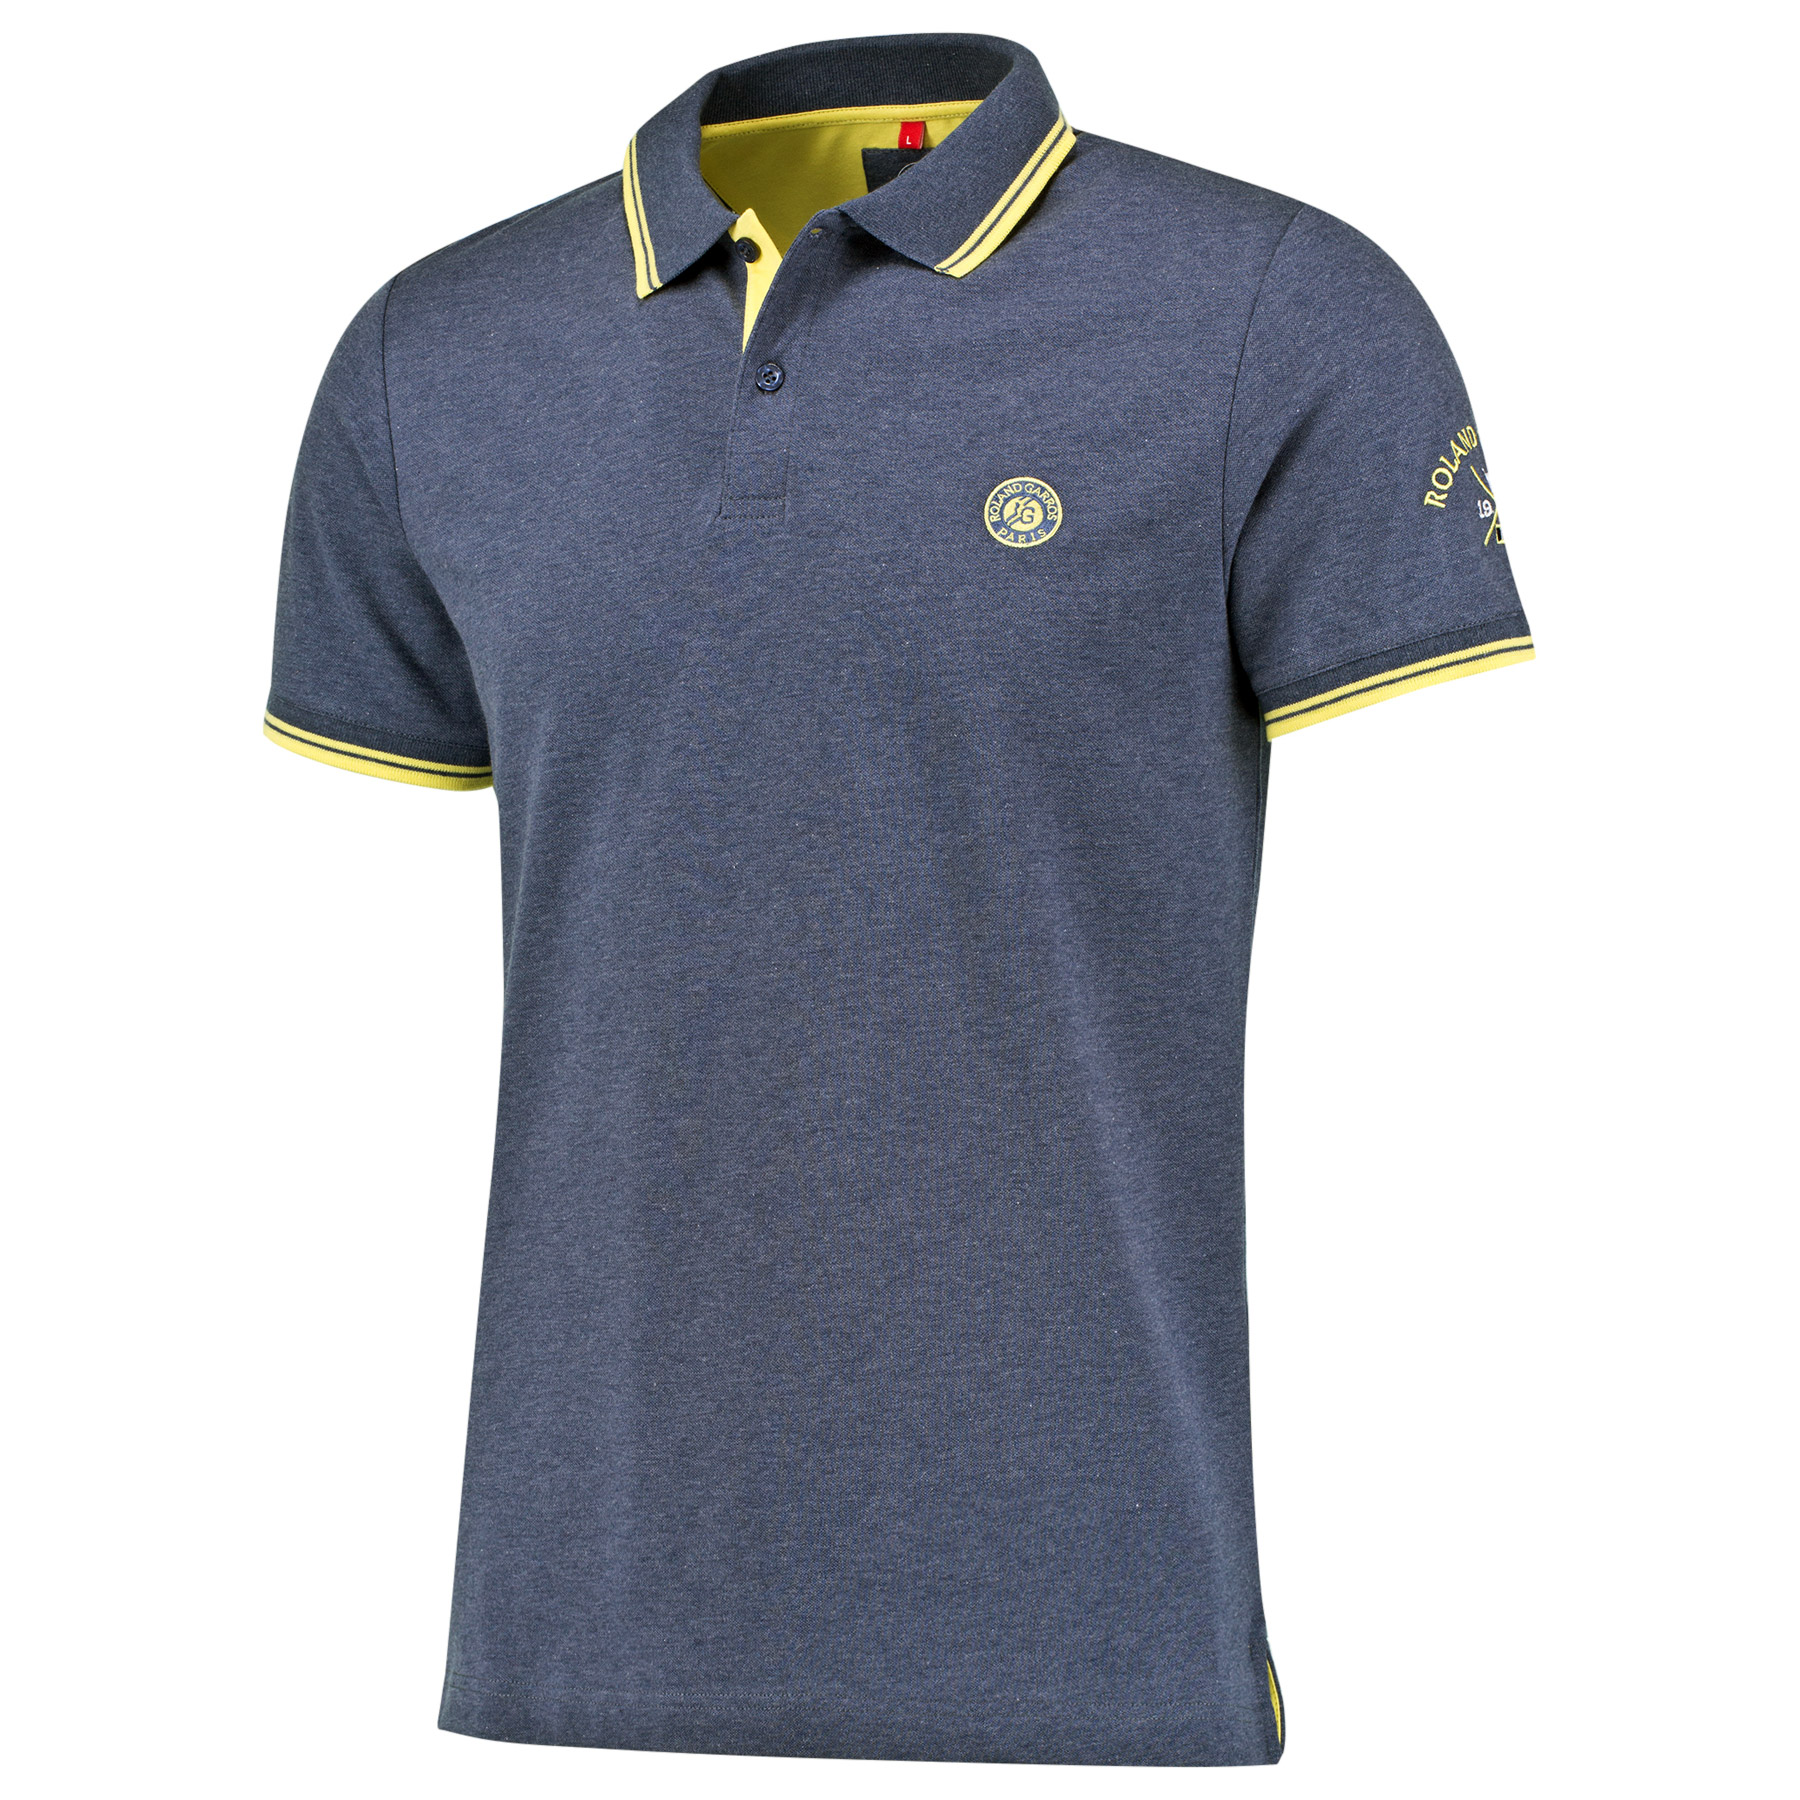 Roland-Garros Sportychic Collection Polo - Mens - Flecked Blue/Yellow